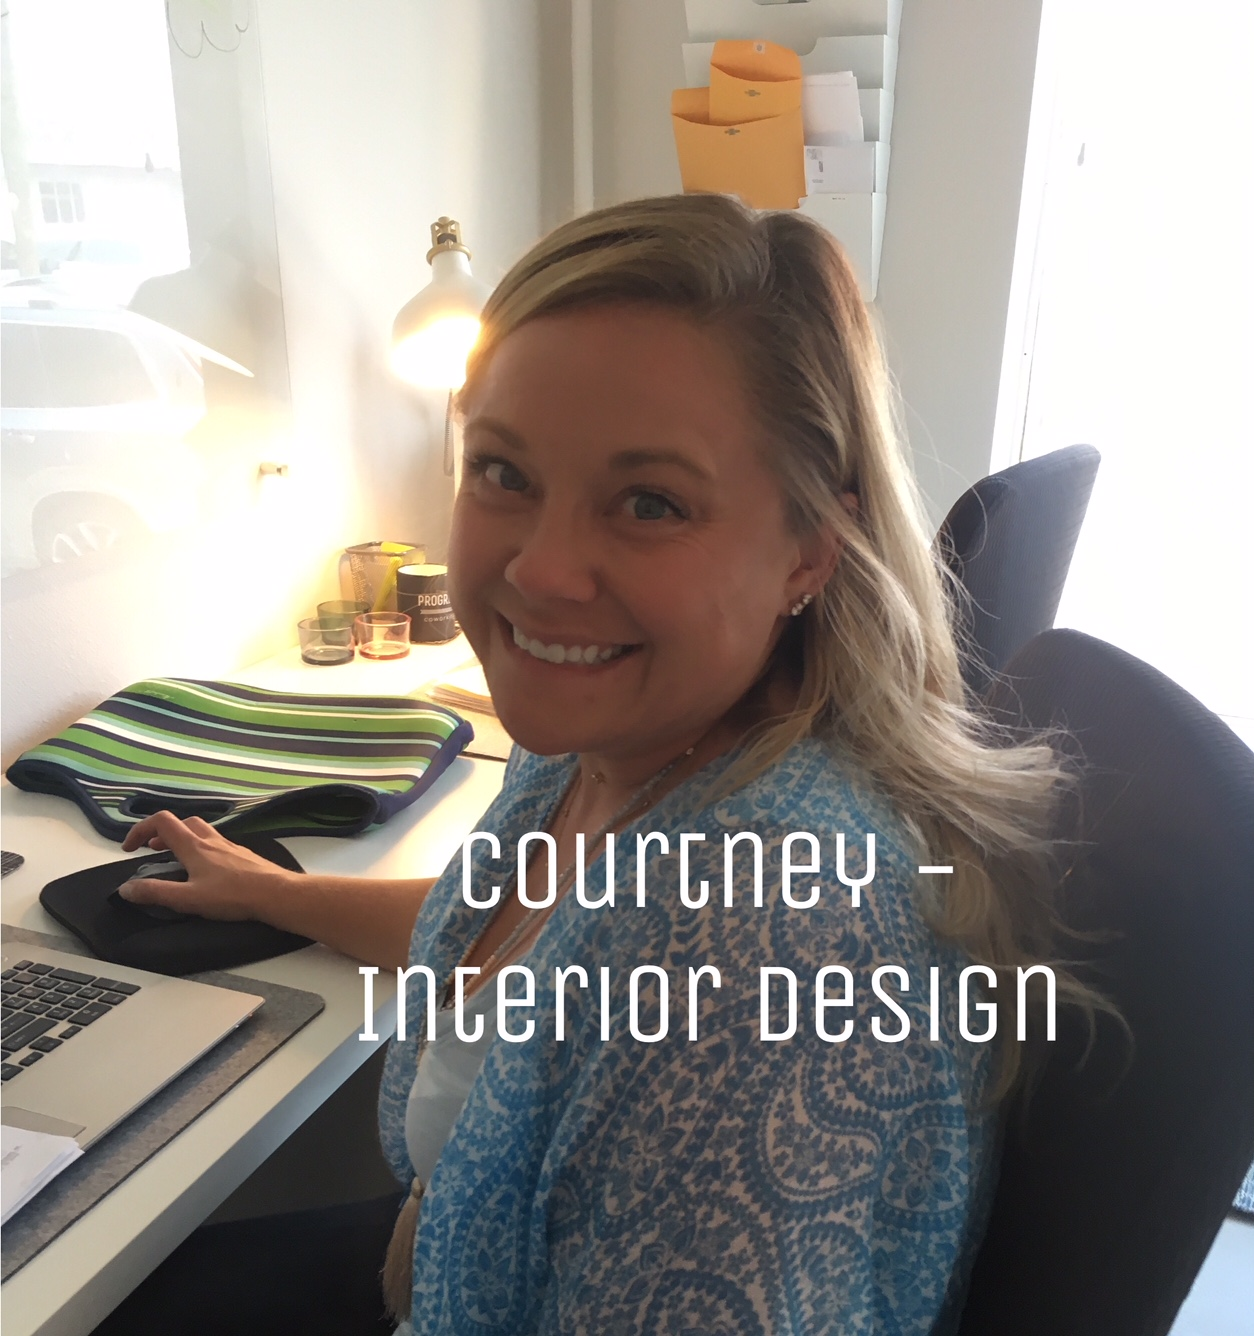 Courtney_int Design.jpeg